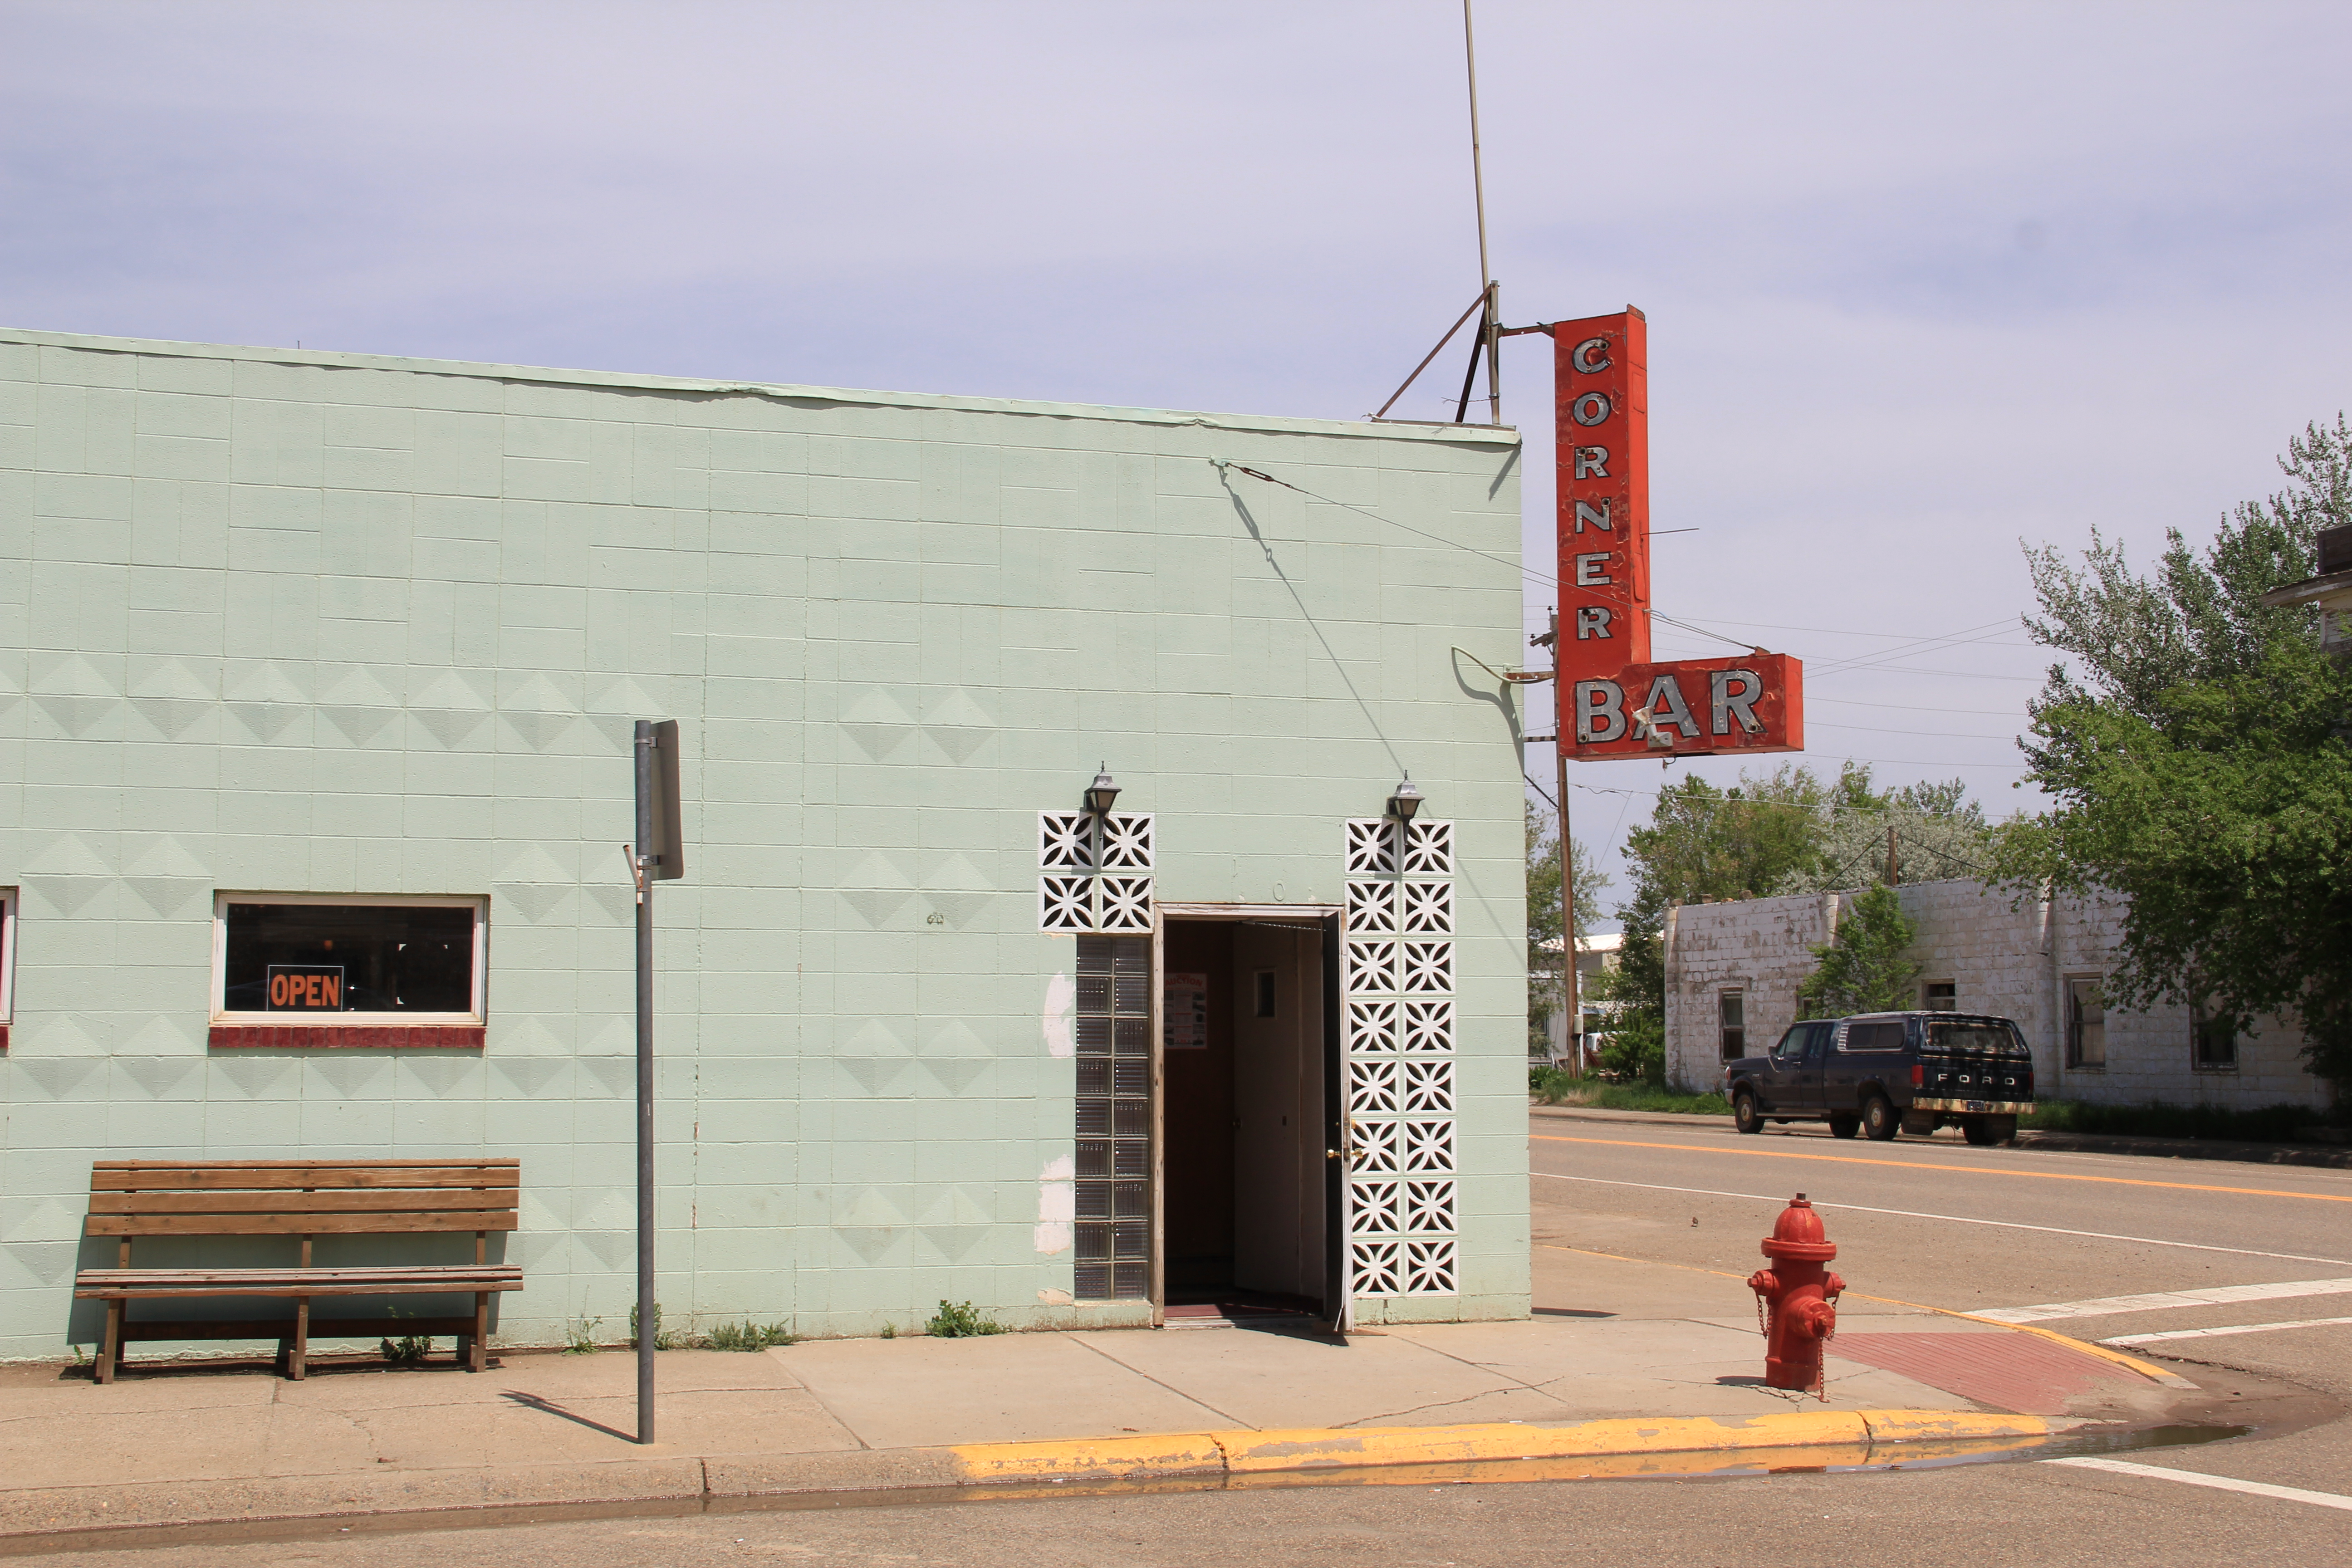 Montana mccone county circle - The Mccone County Fairgrounds Hosts One Of The Region S Best Rodeos Every Summer And Then Out At The Airport Is Yet Another Rare Historic Property The